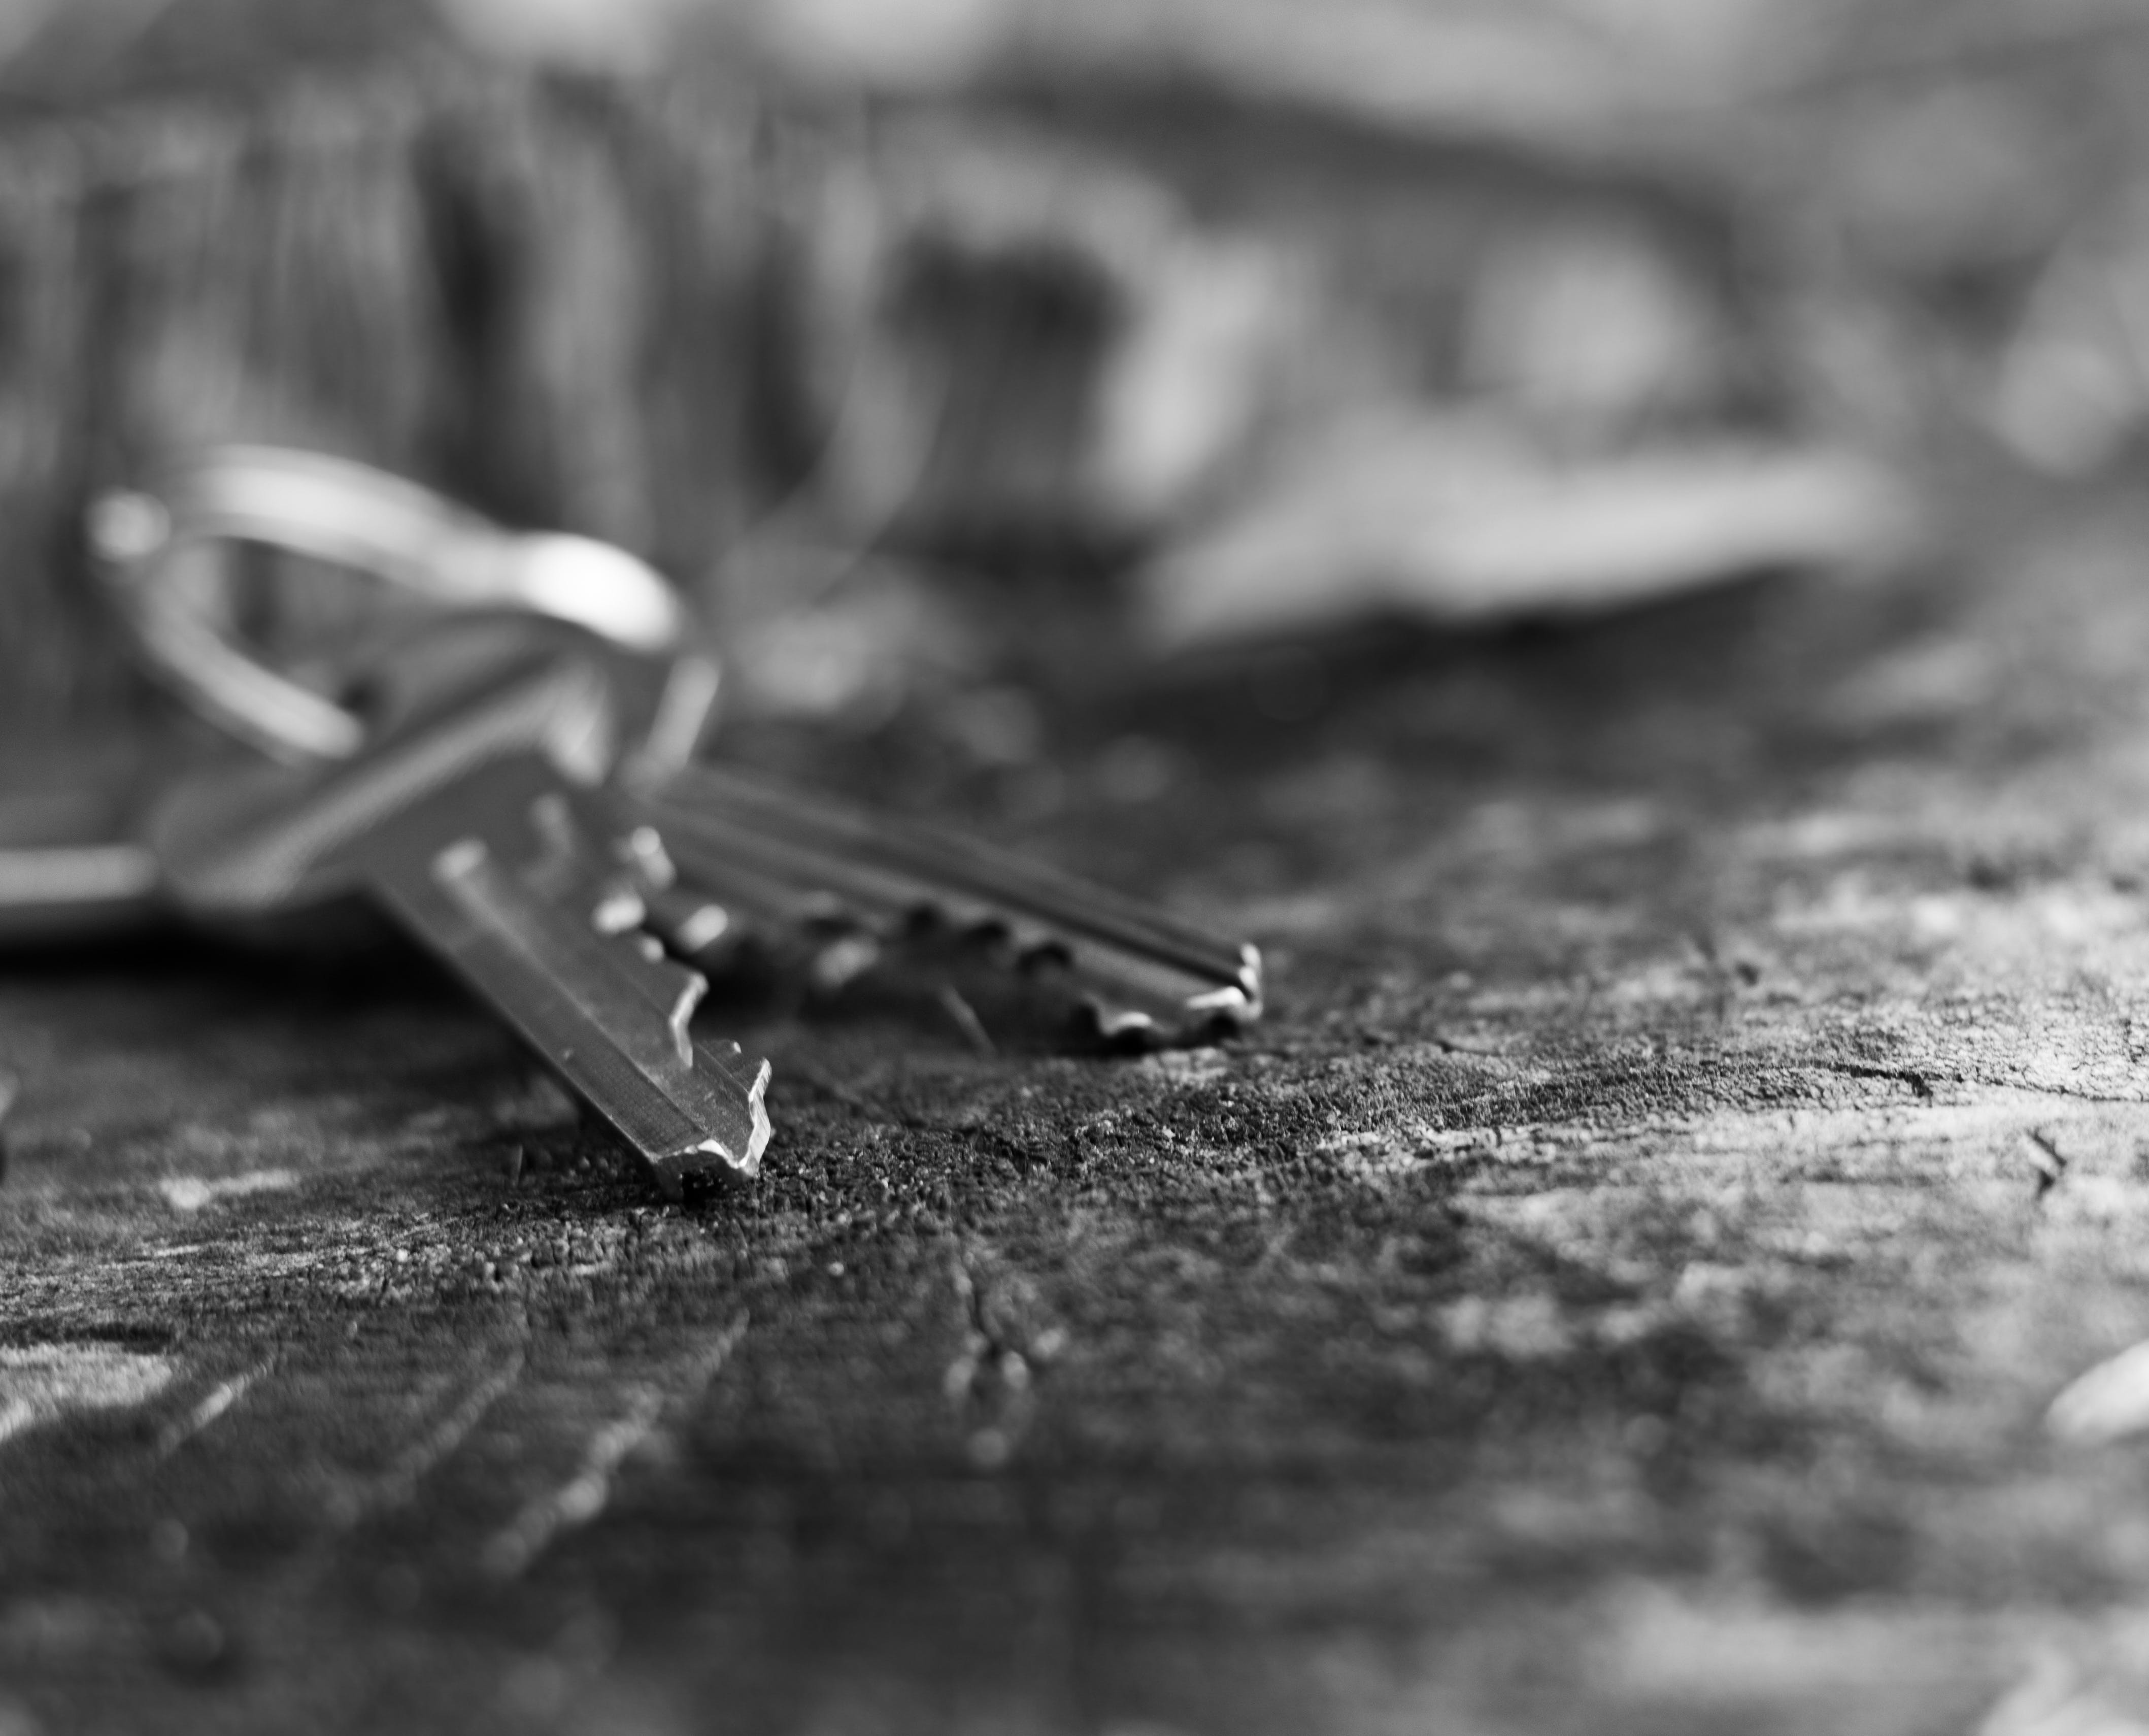 Grayscale Photo of Two Keys on Surface